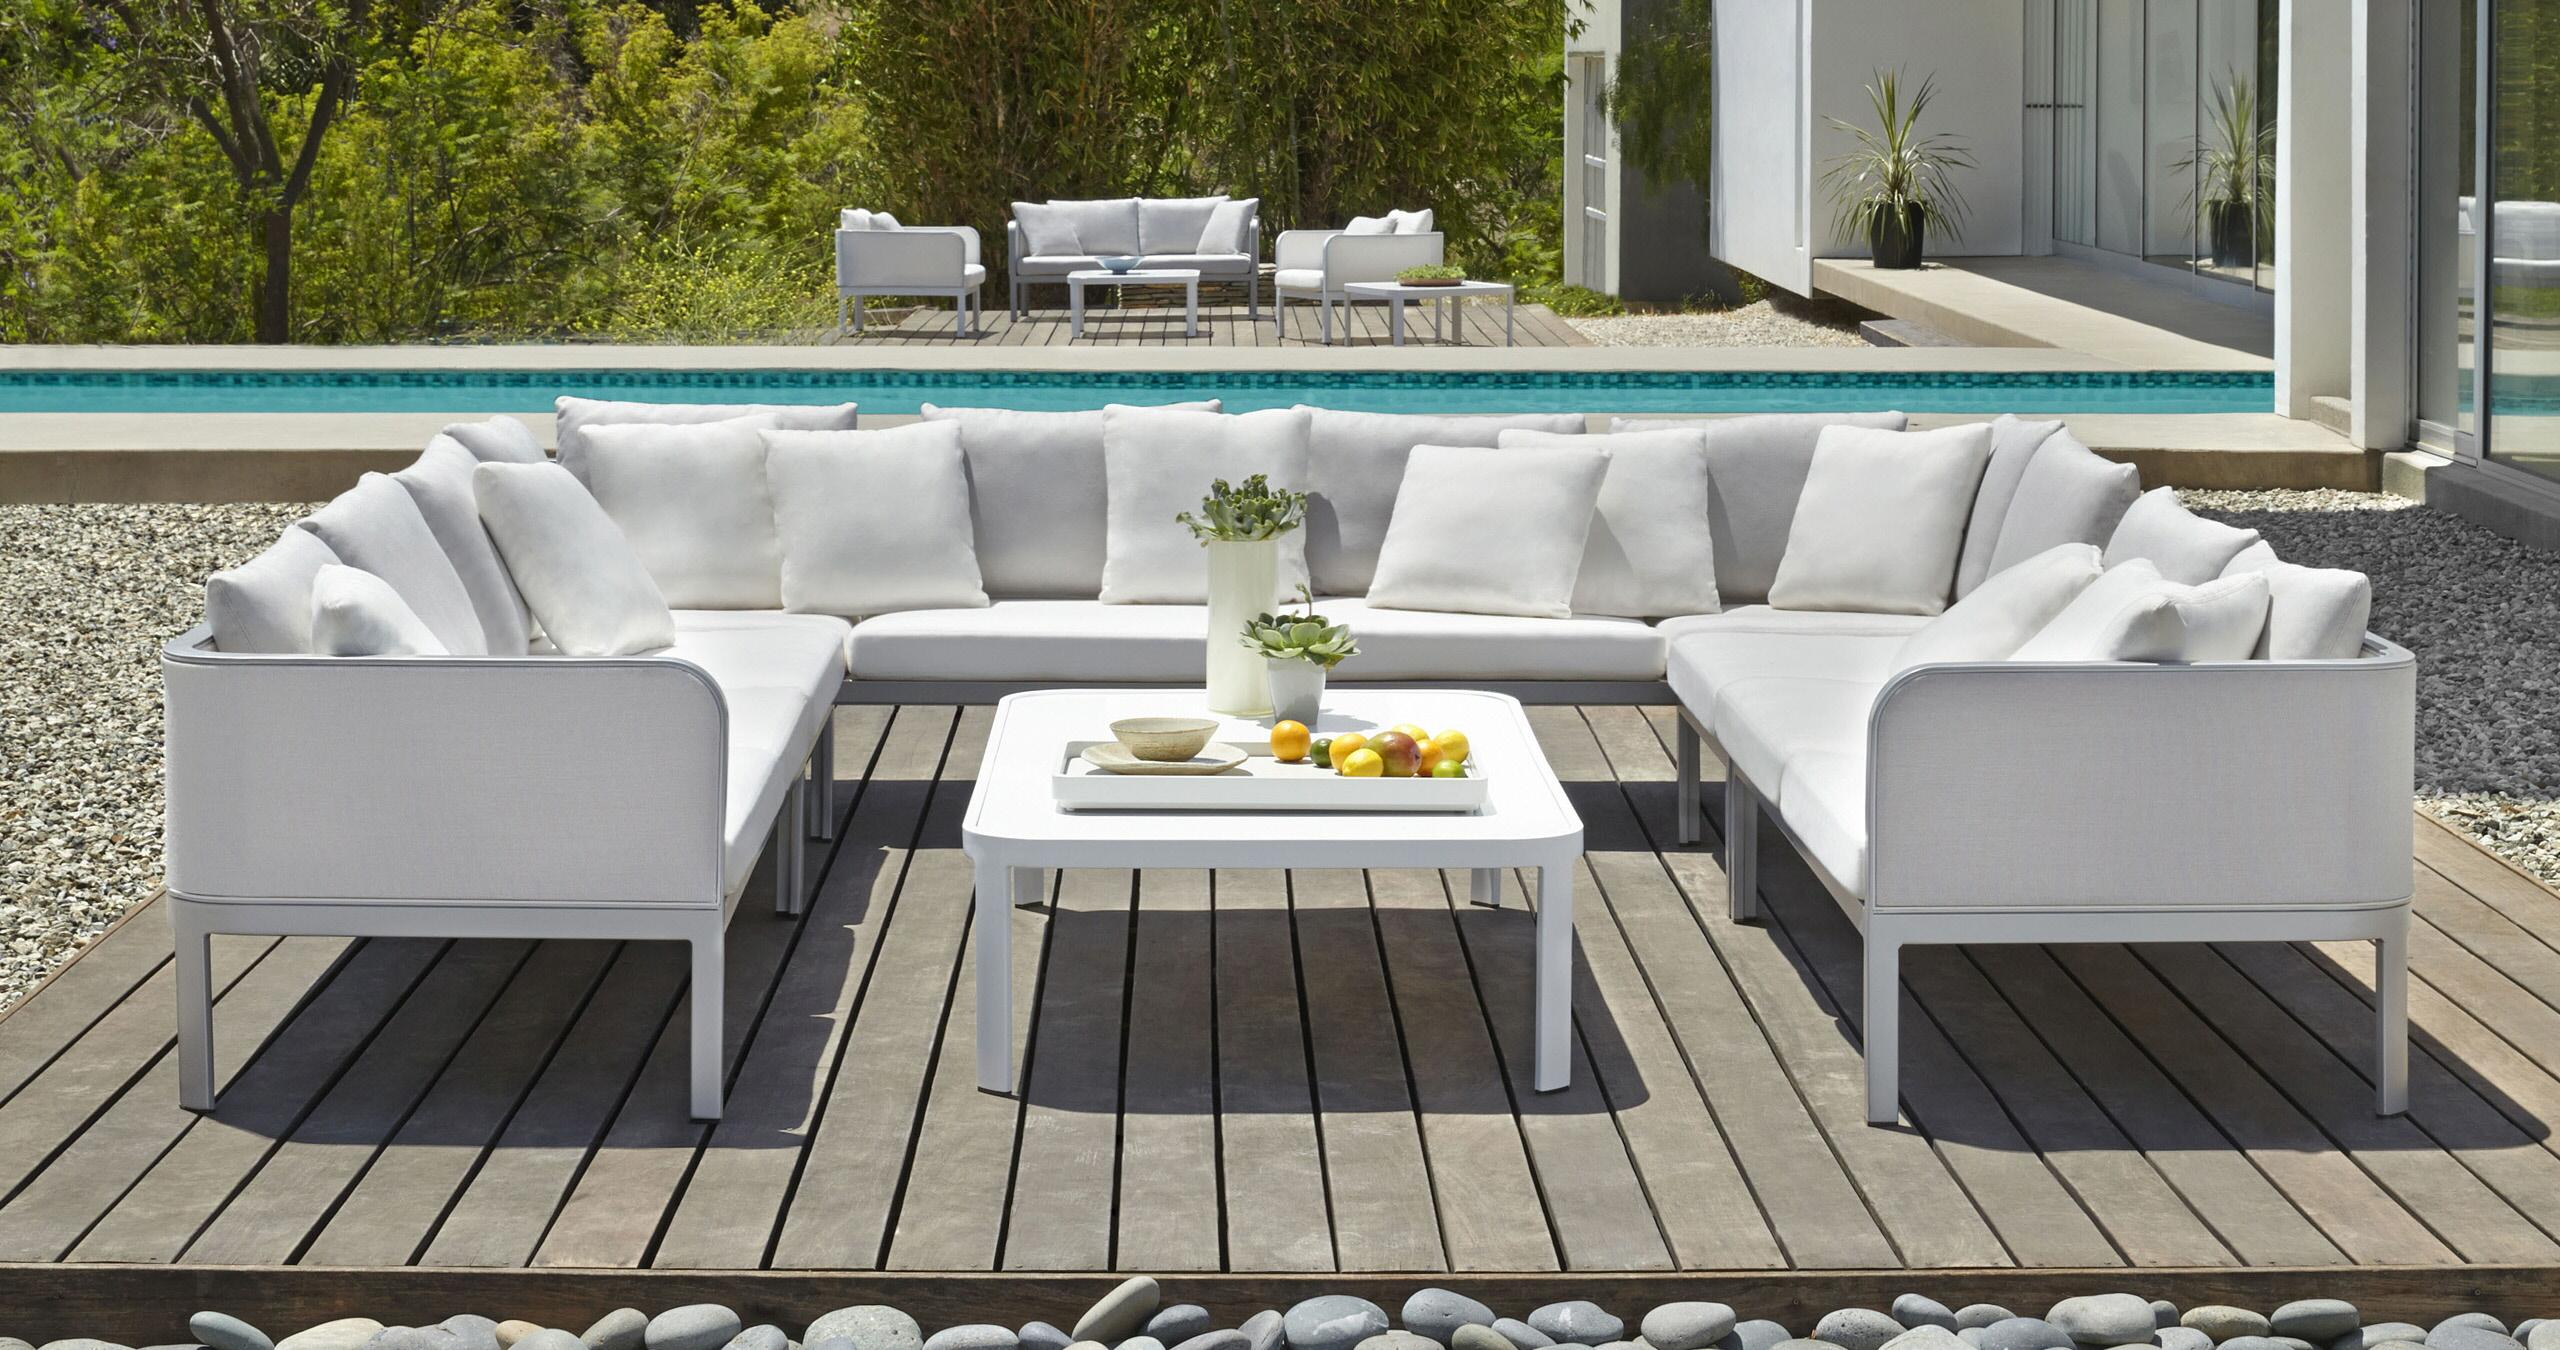 brown jordan patio furniture recognized as a leader in luxury outdoor furniture design and  manufacturing, PYCSZVI